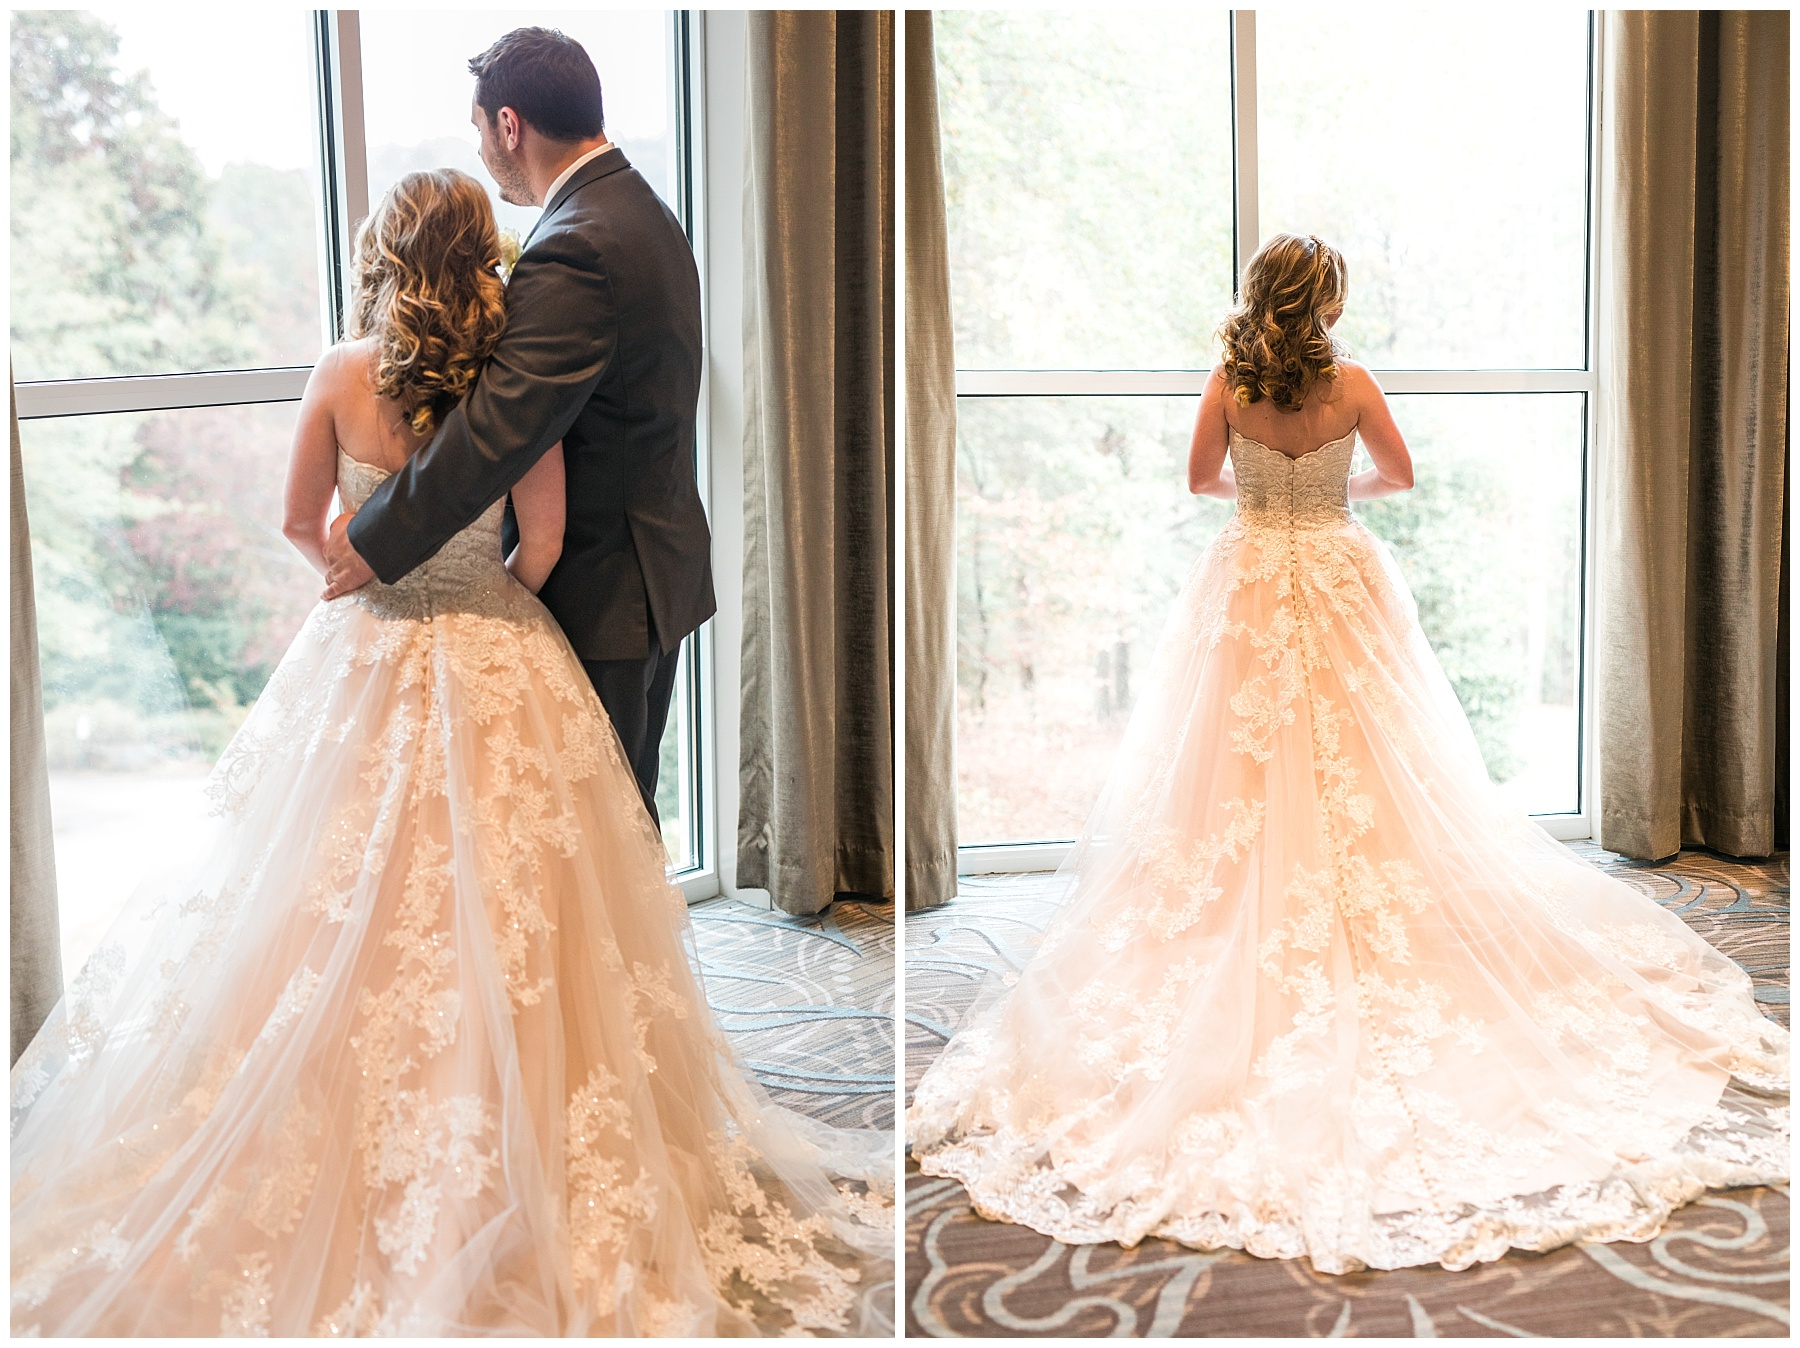 that dress! that lace! that back! that drama! It was to die for!